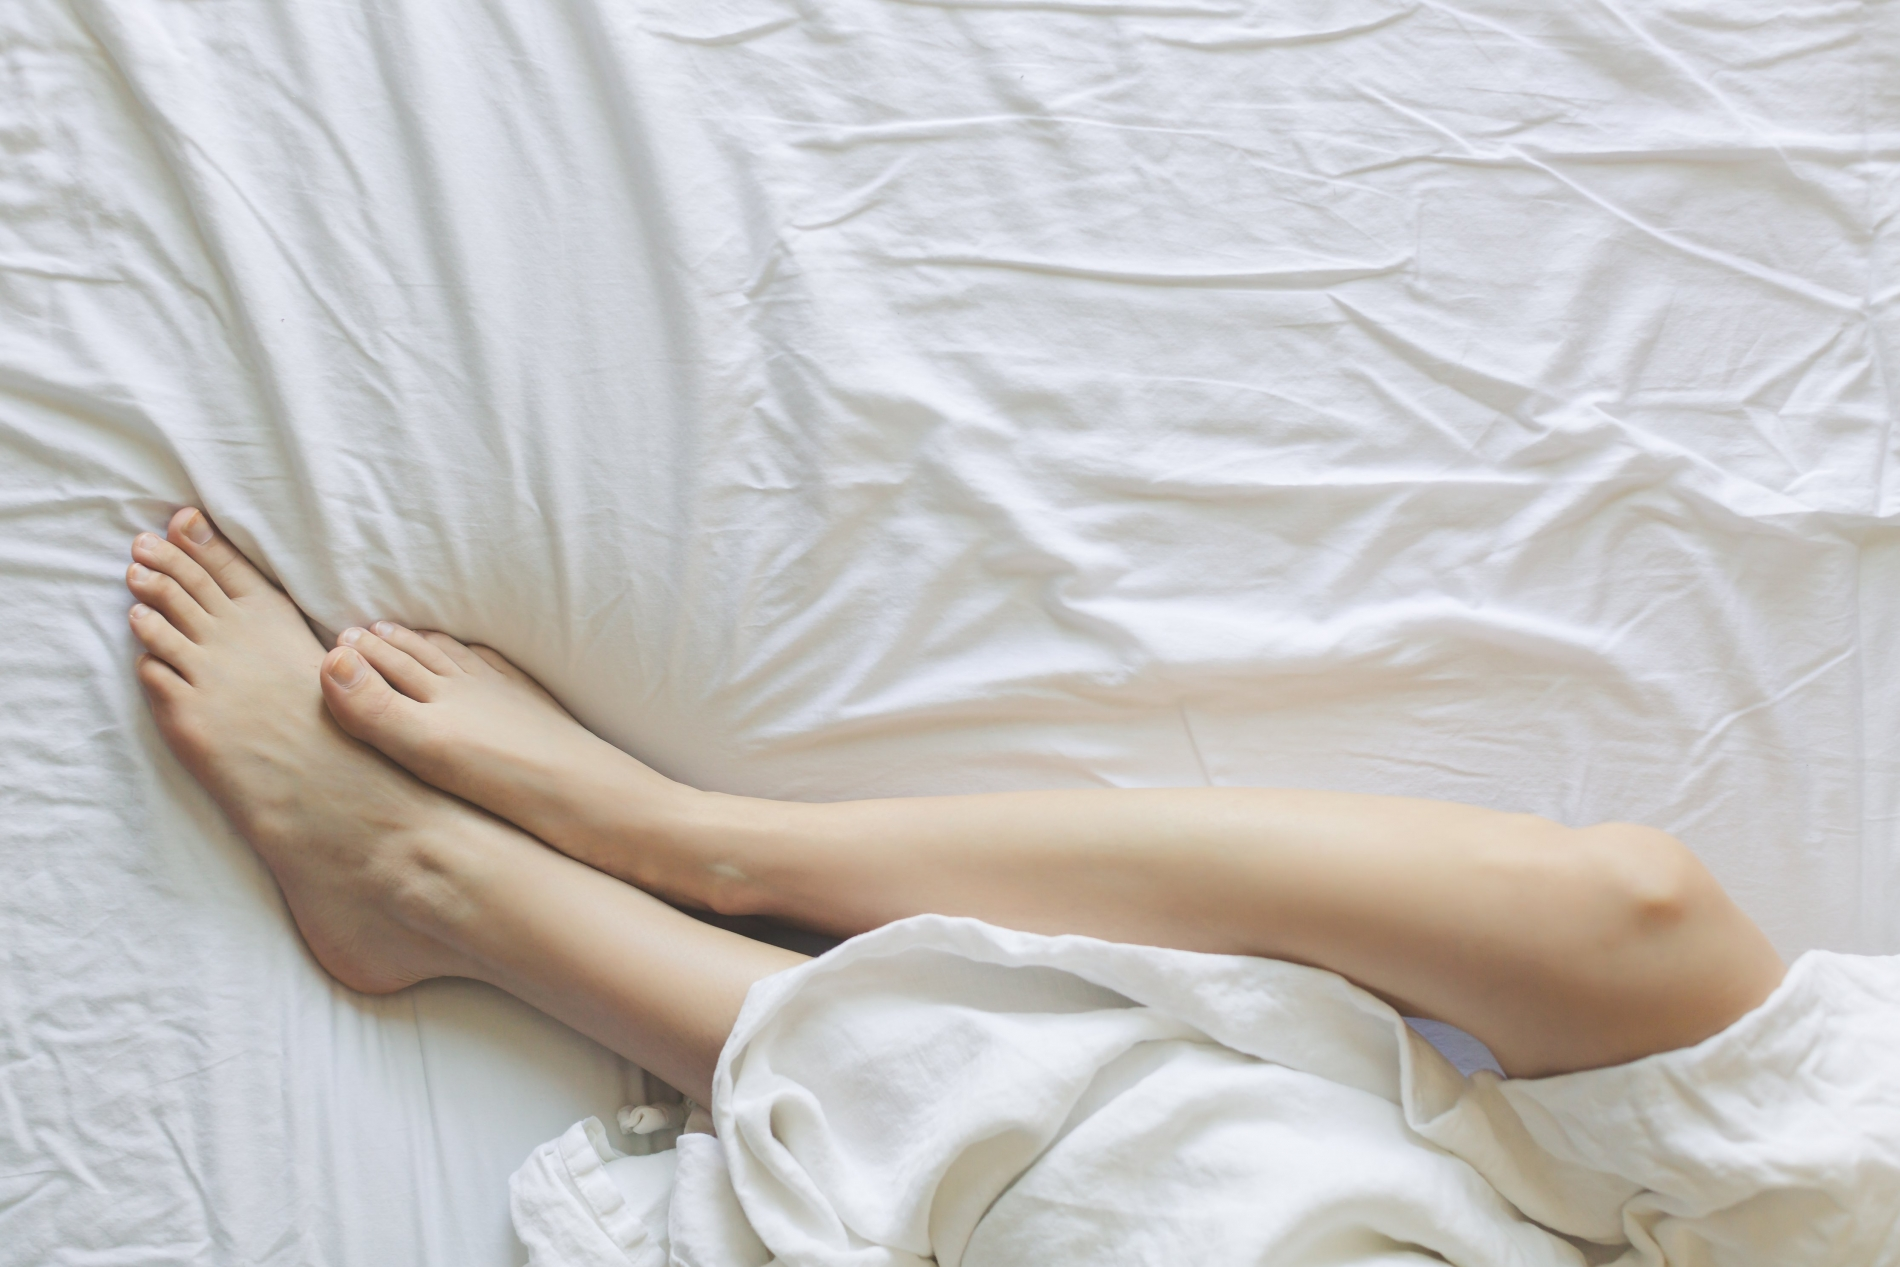 a man and woman's legs partly covered with a bed sheet